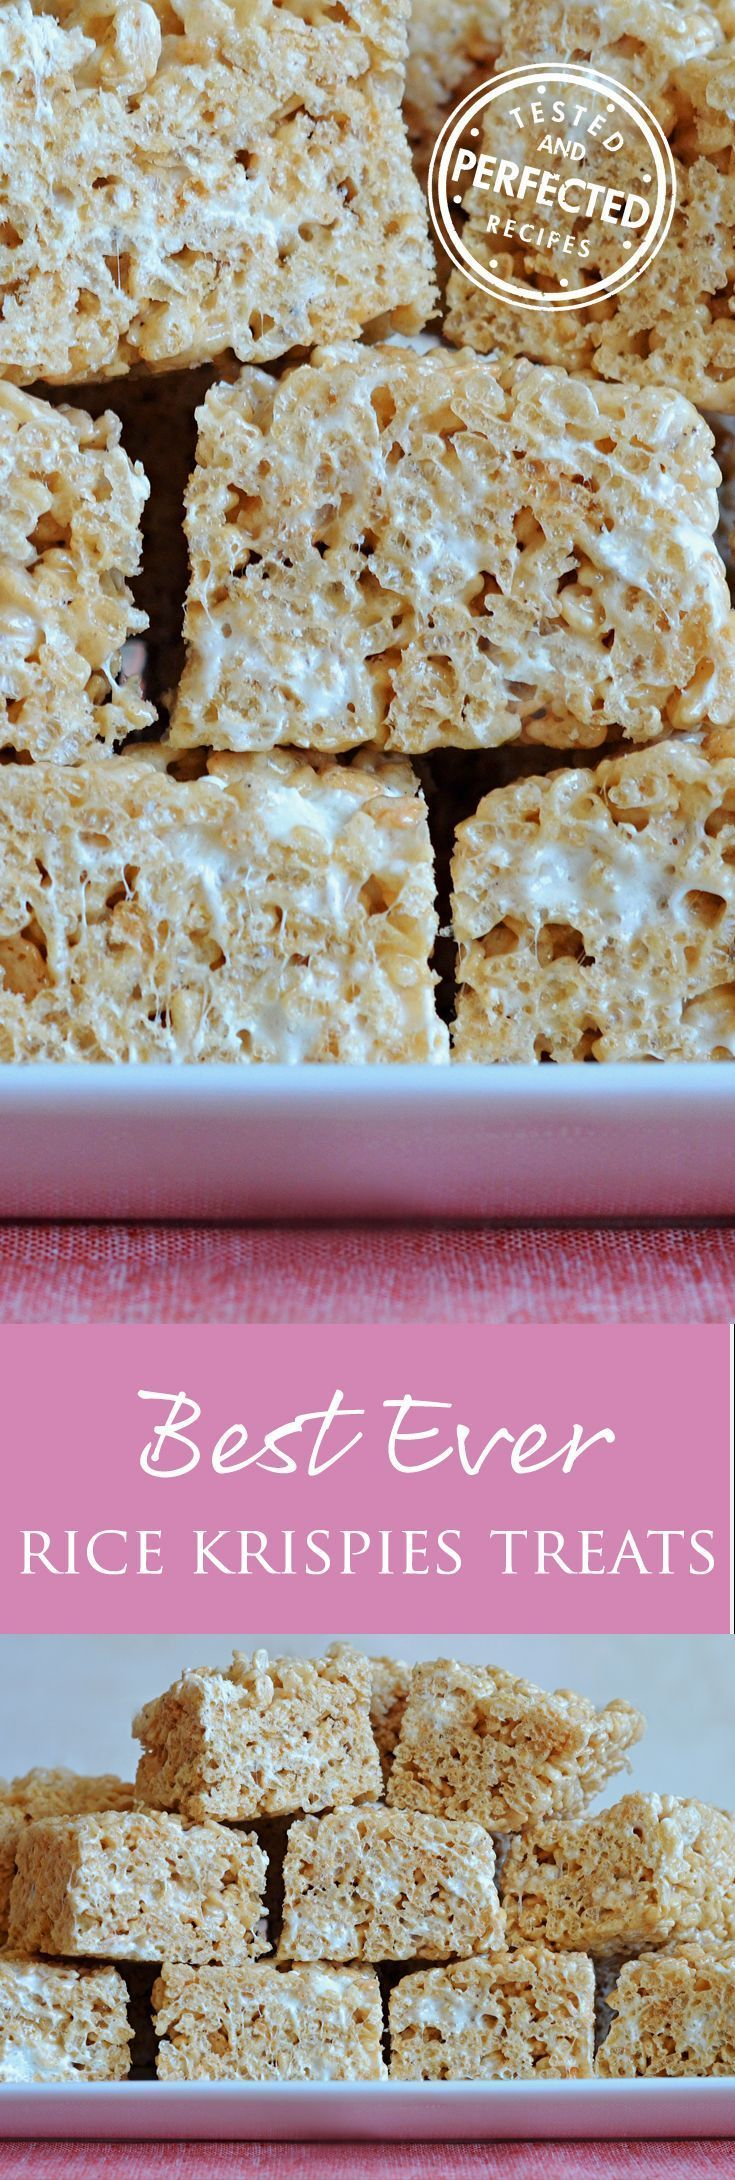 Best Ever Rice Krispies Treats #desserts #desserttable